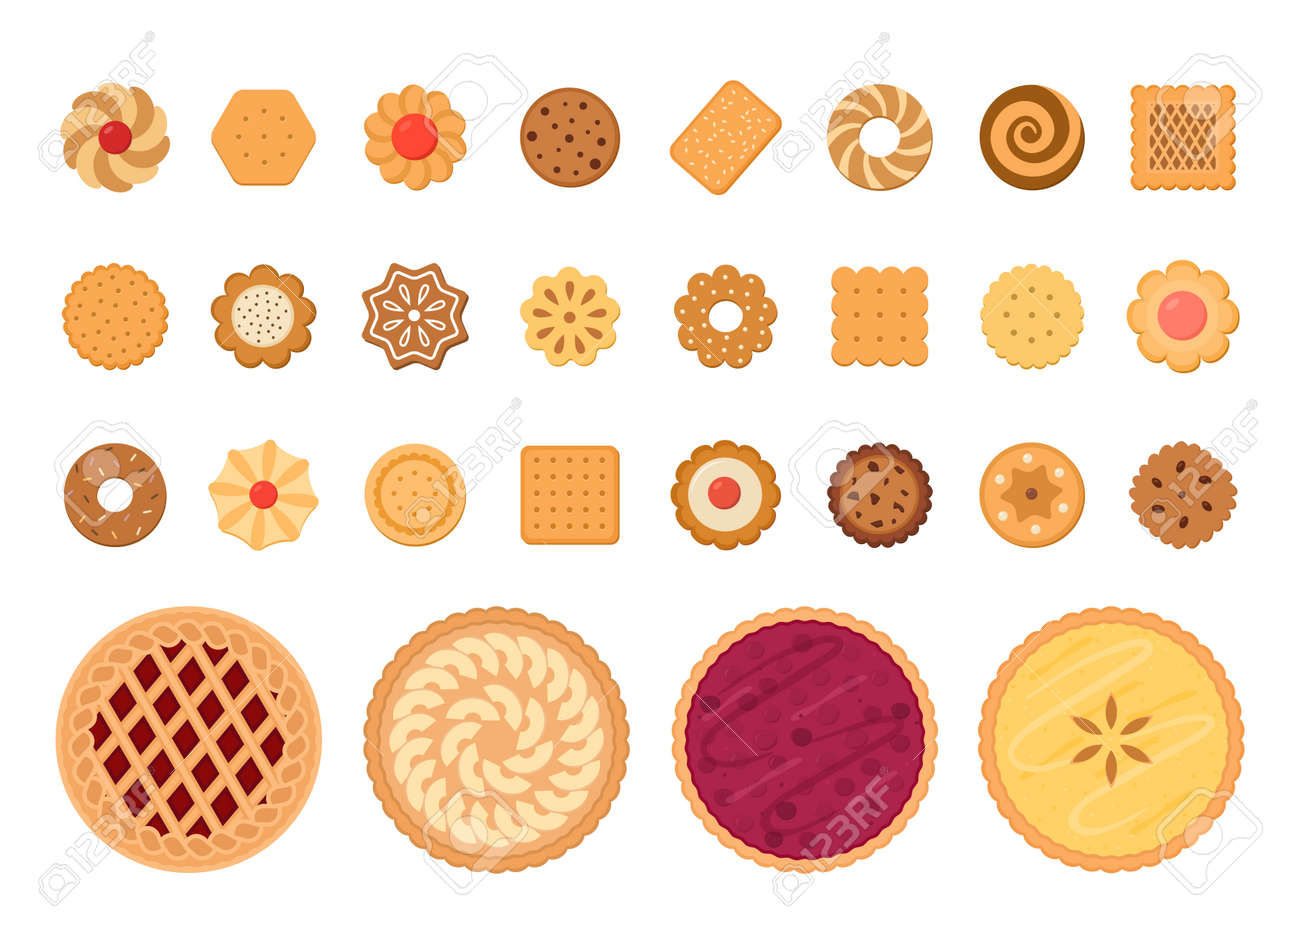 Set of fruit pies and cookies. Isolated on white background. Vector illustration. - 167409947